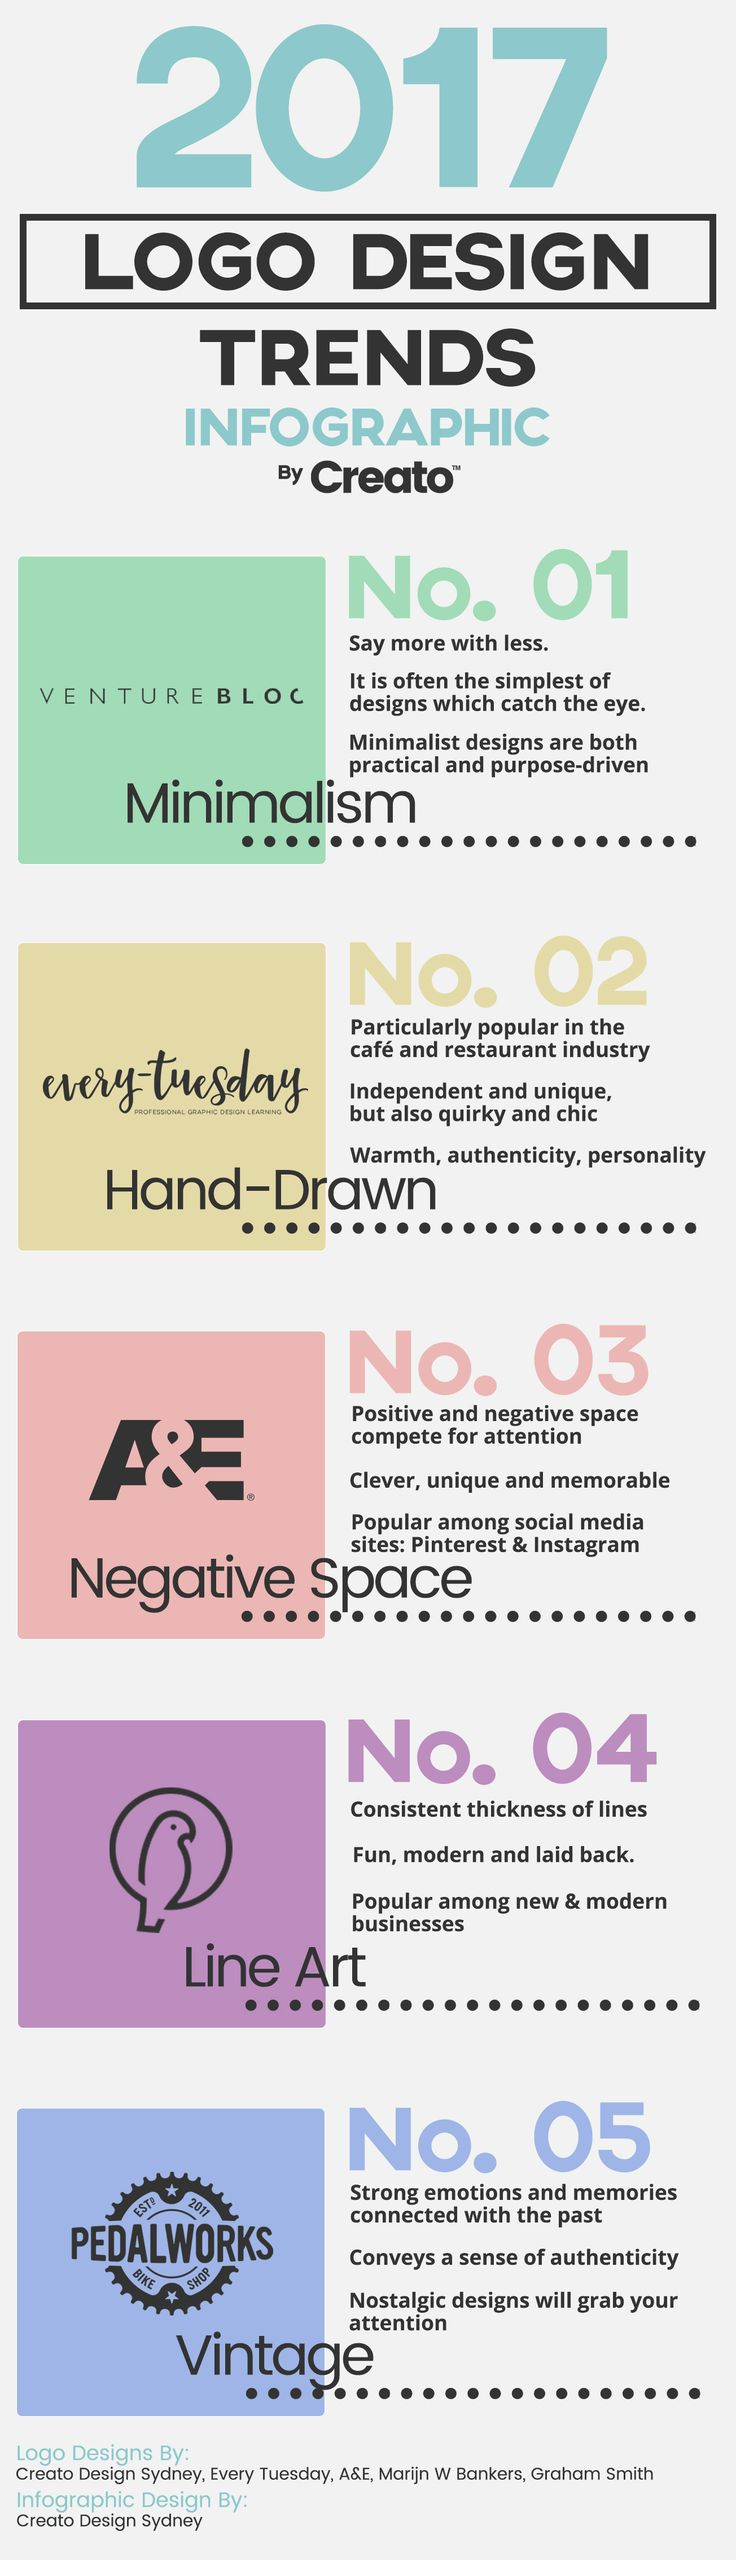 5 Logo Design Trends Taking Charge in 2017 [Infographic]